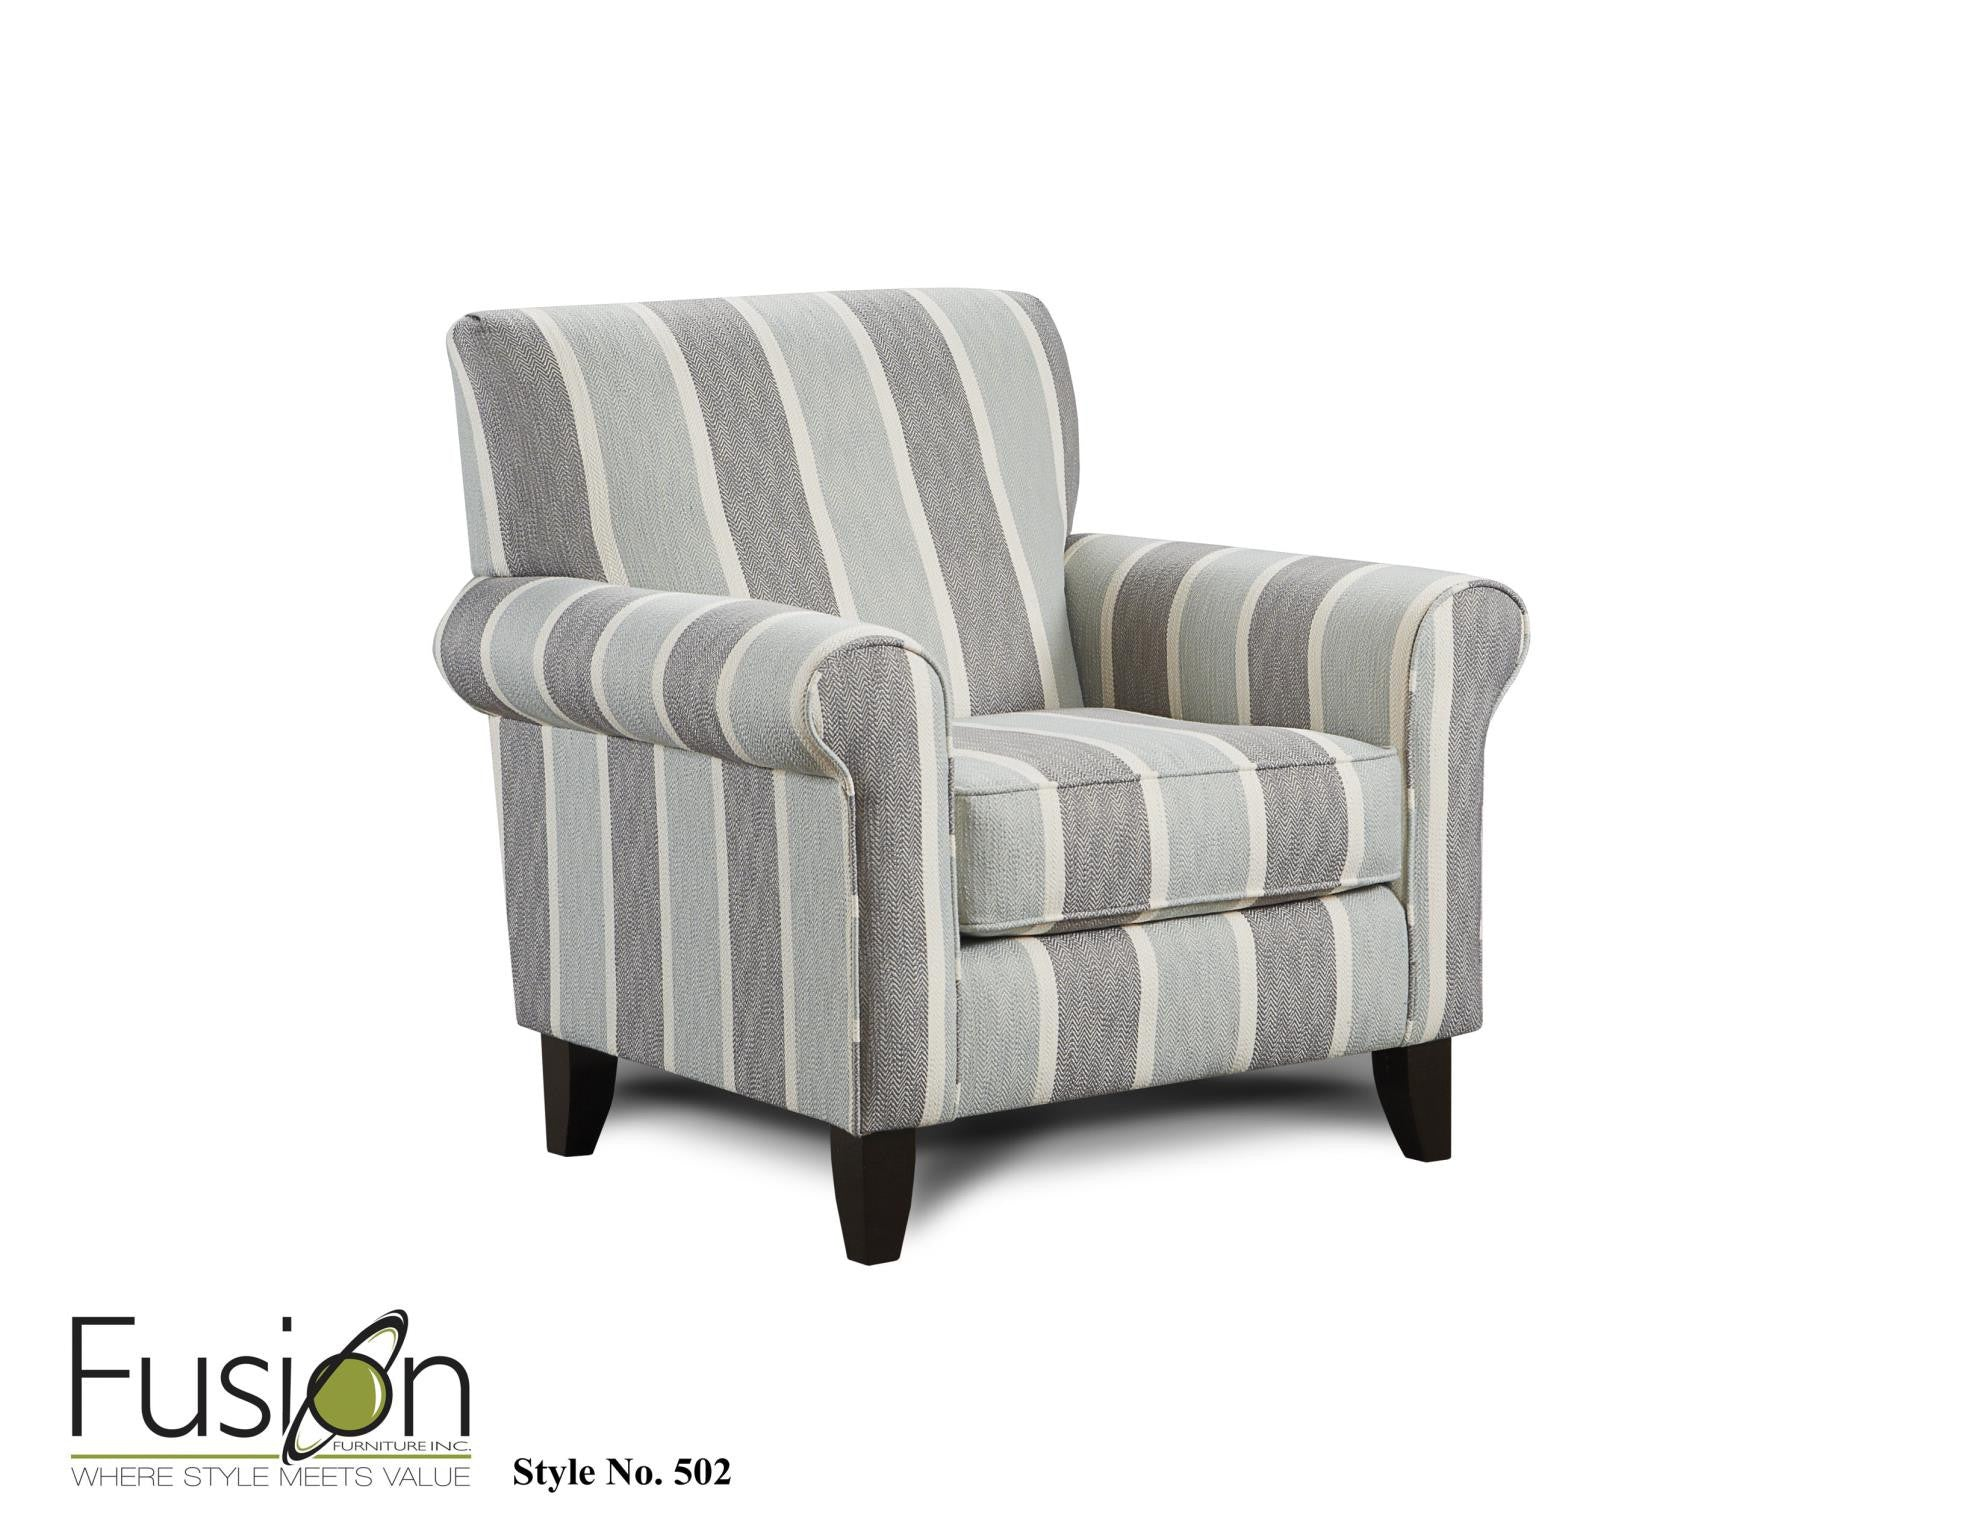 Fusion Grande Mist Sofa and Loveseat